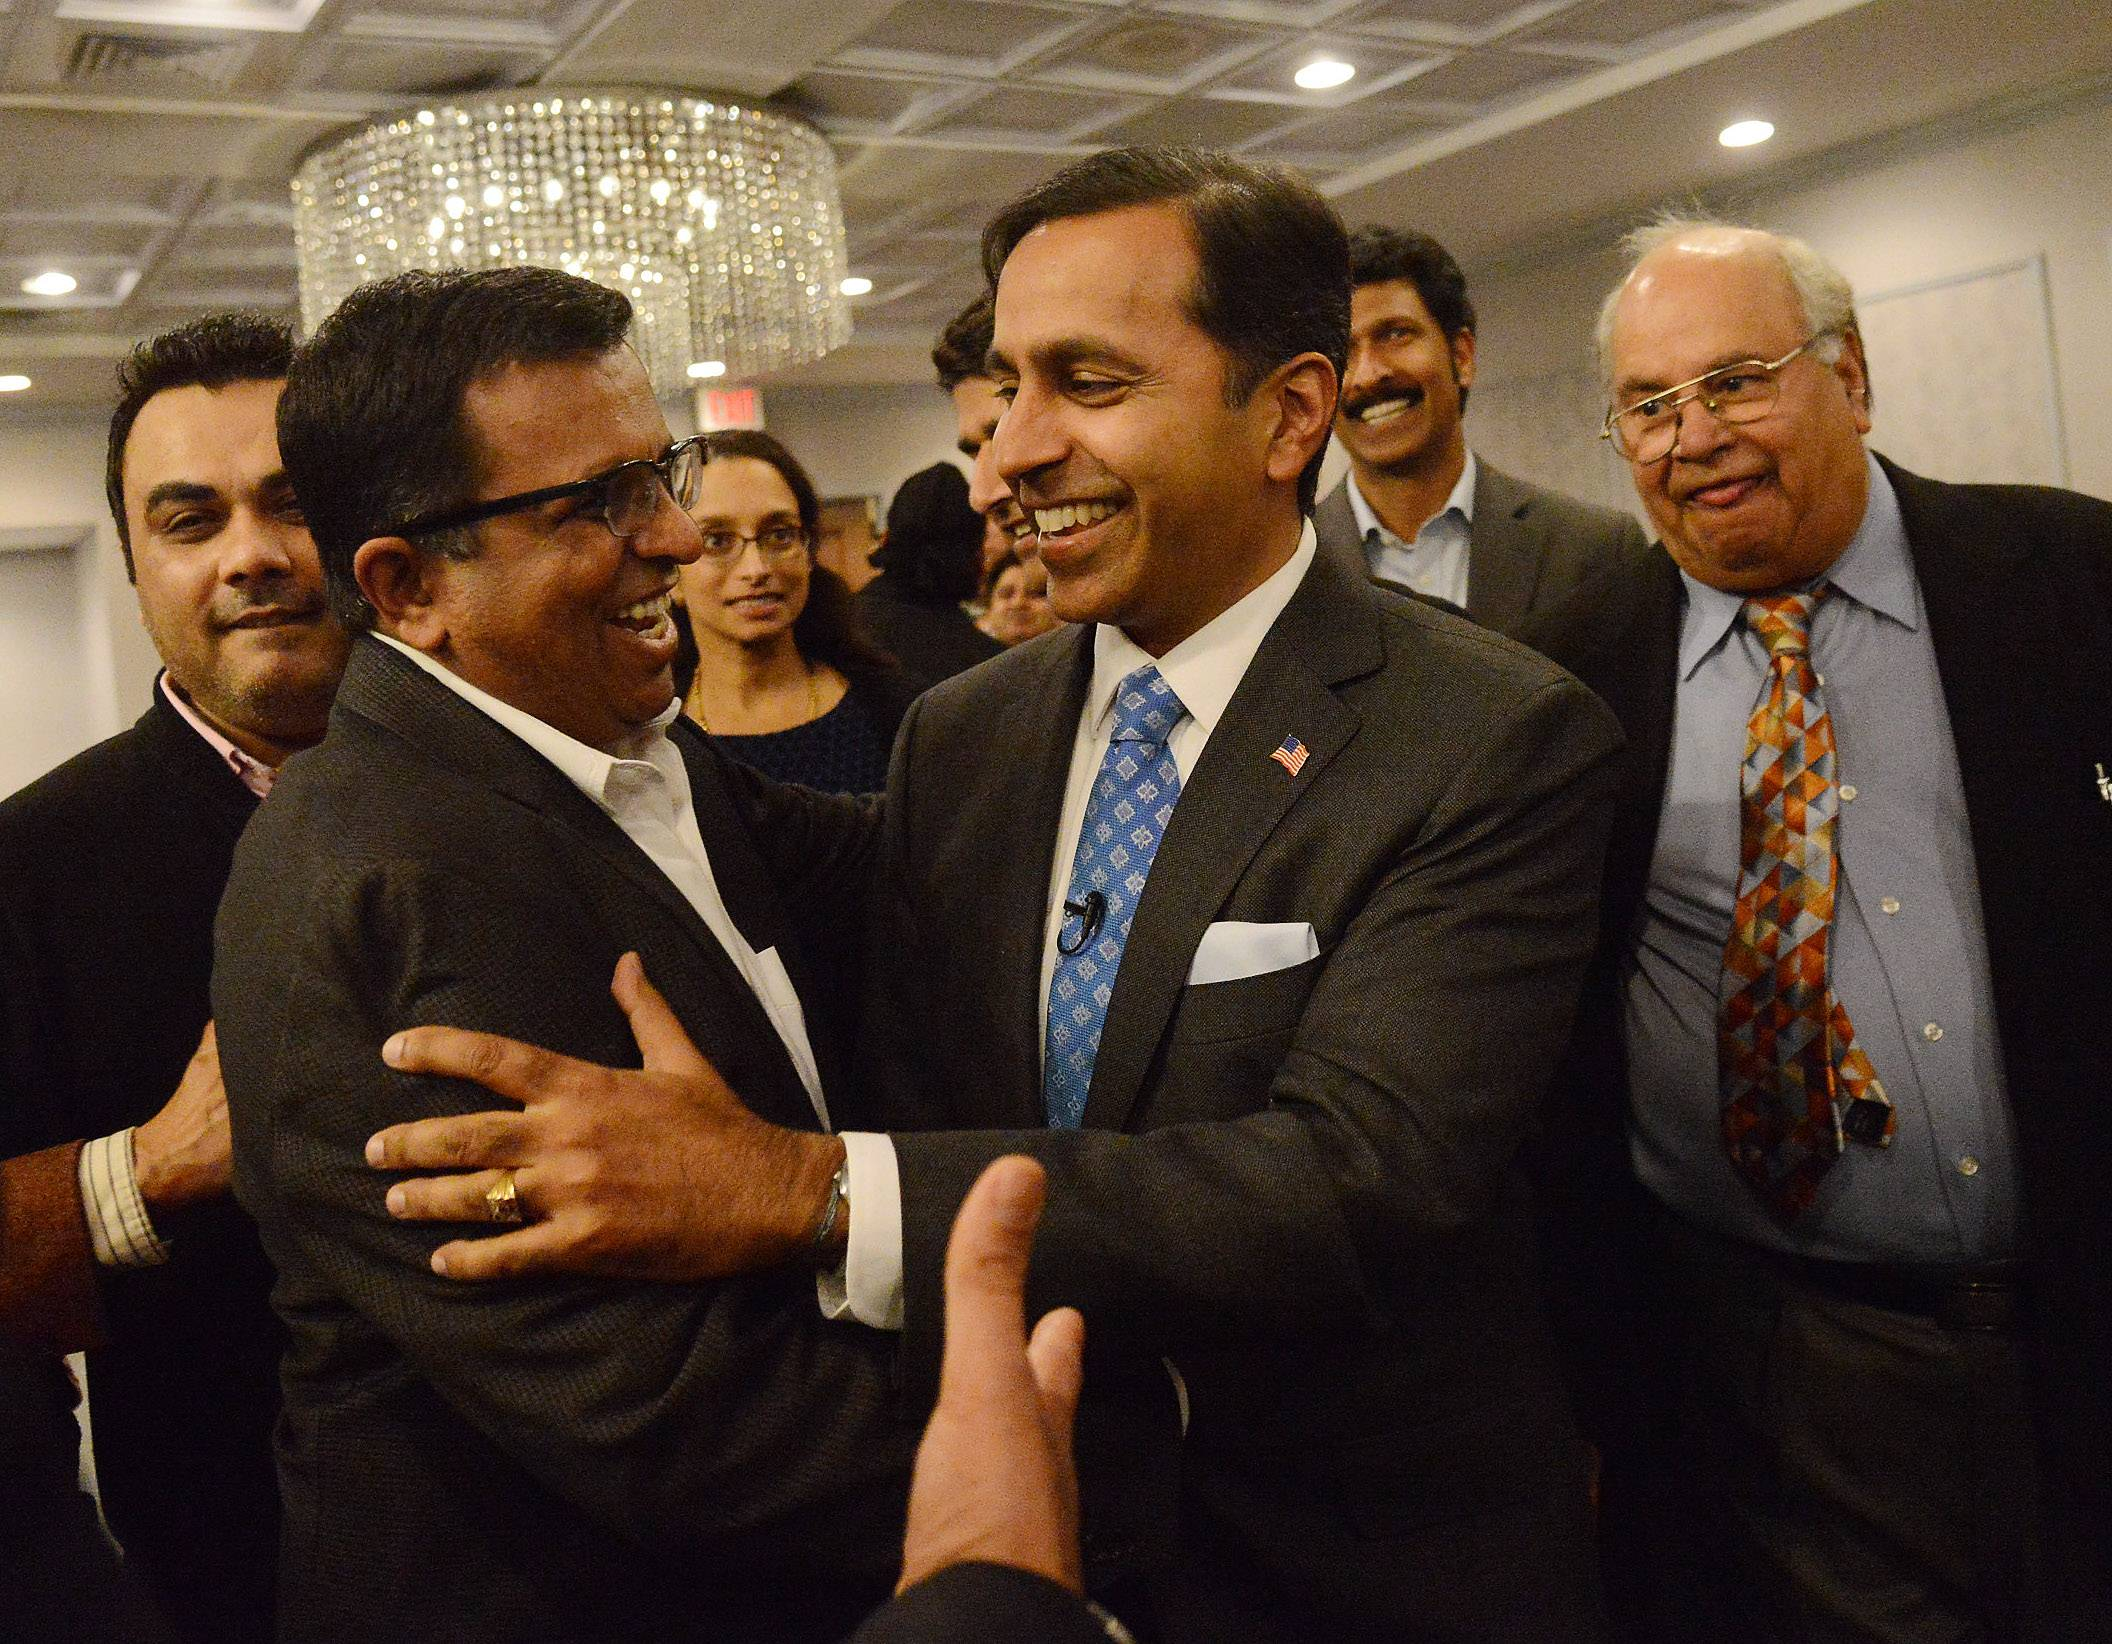 Raja Krishnamoorthi, right, Democratic candidate for the 8th Congressional District, is congratulated by supporters on his way to the podium for his victory speech Tuesday. Krishnamoorthi's victory in Tuesday's Democratic primary could portend a growing influence of Indian-Americans on the suburban political scene, he and others say.